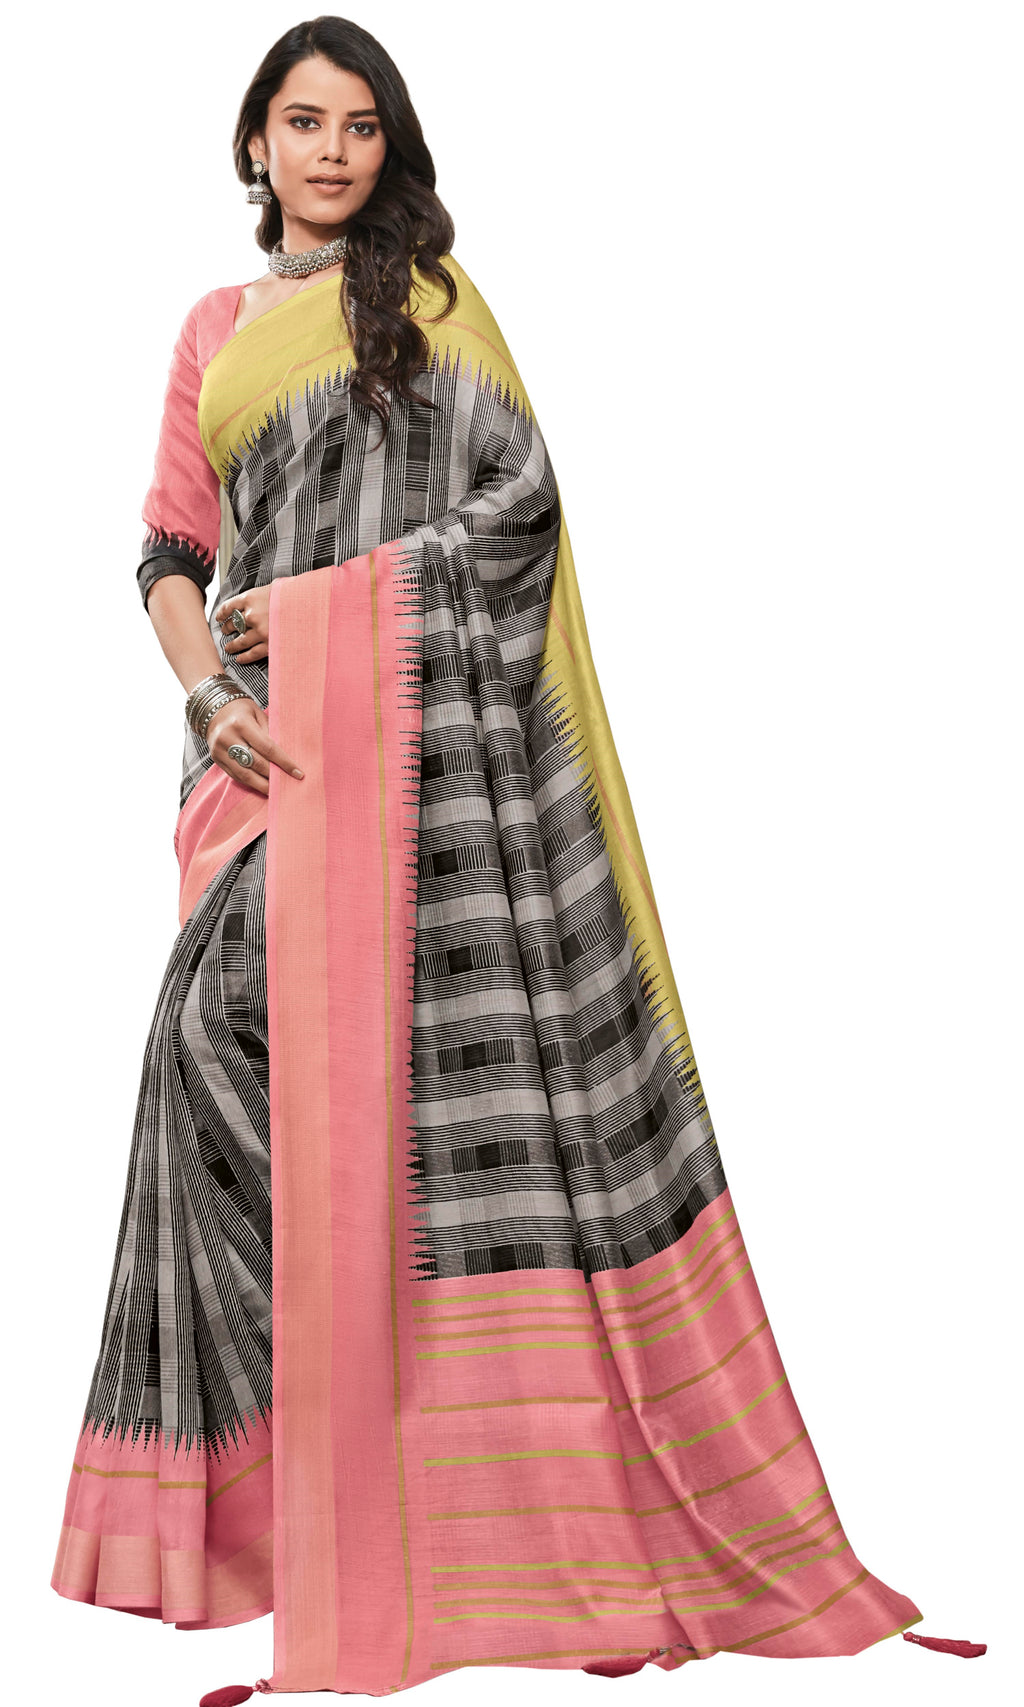 Black & White Color Cotton Festive & Function Wear Sarees NYF-8507